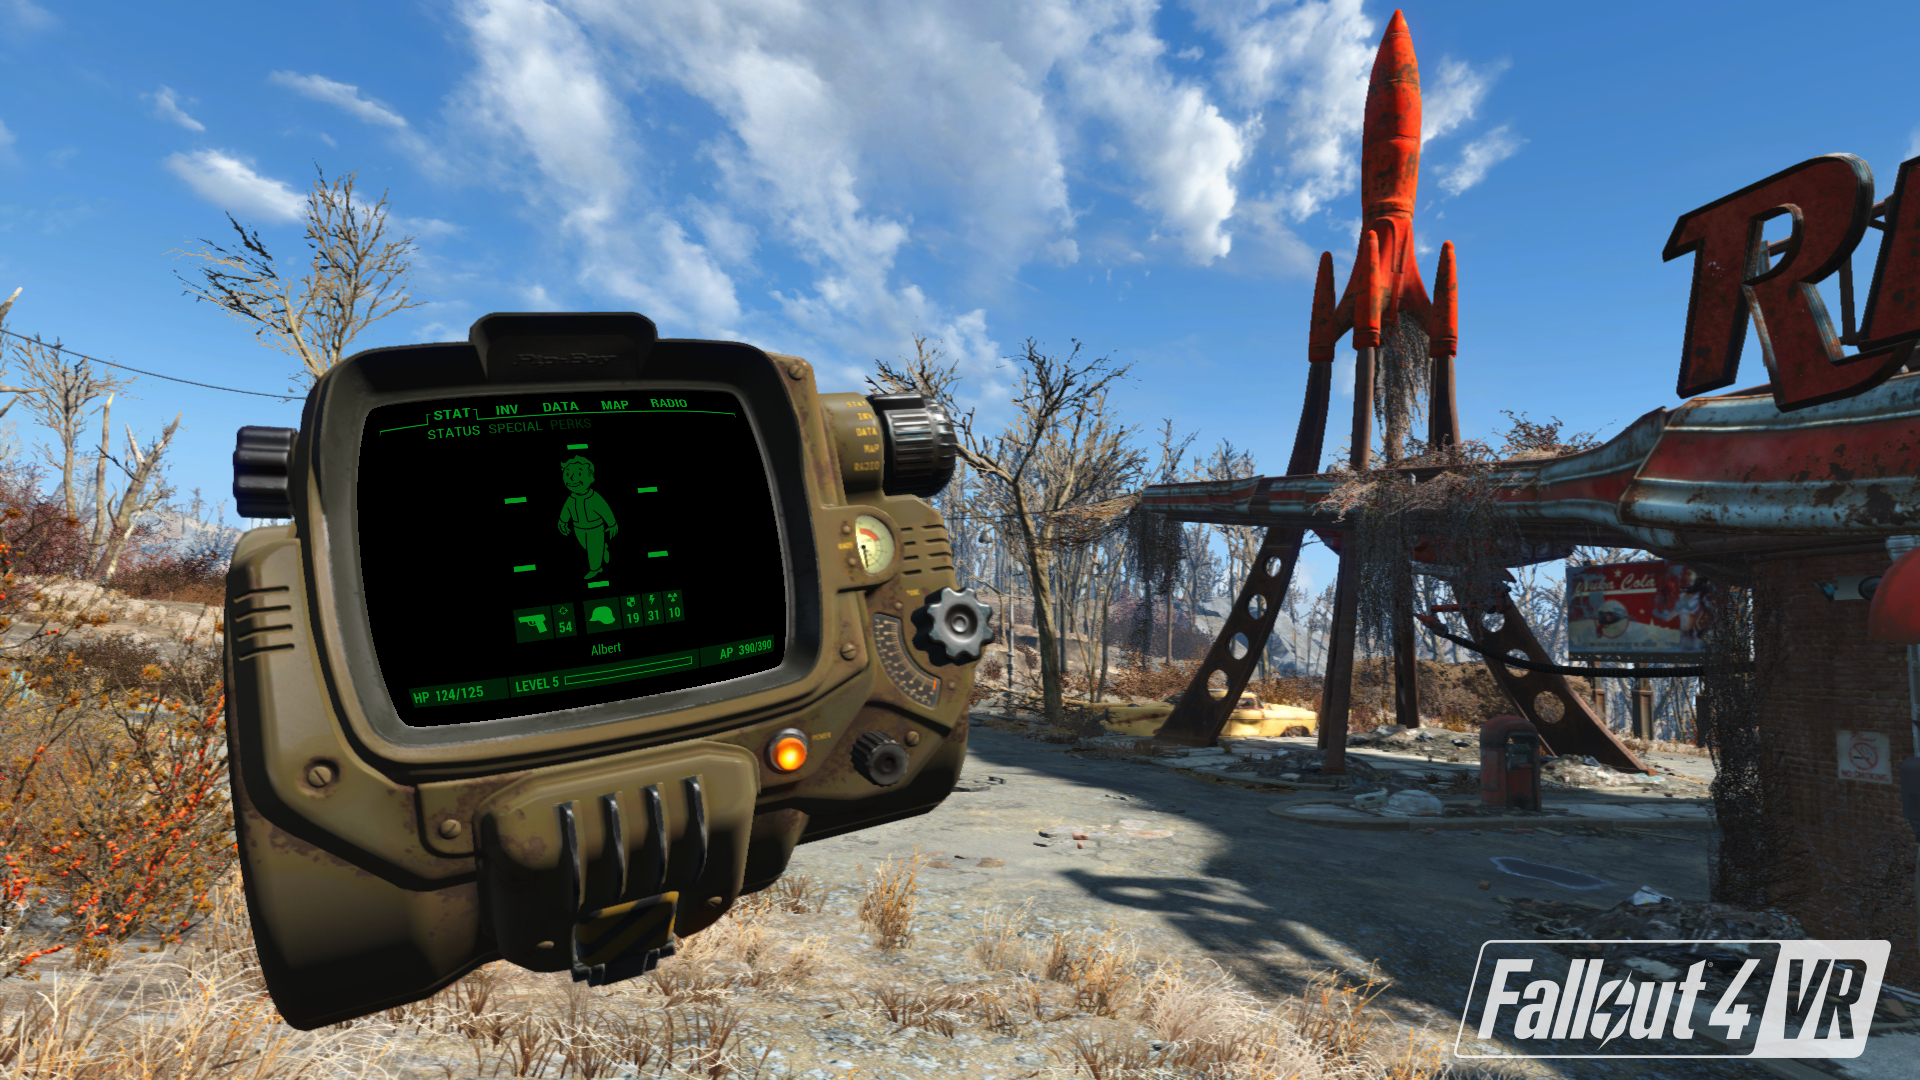 Get Fallout 4 VR free with new HTC Vive bundle